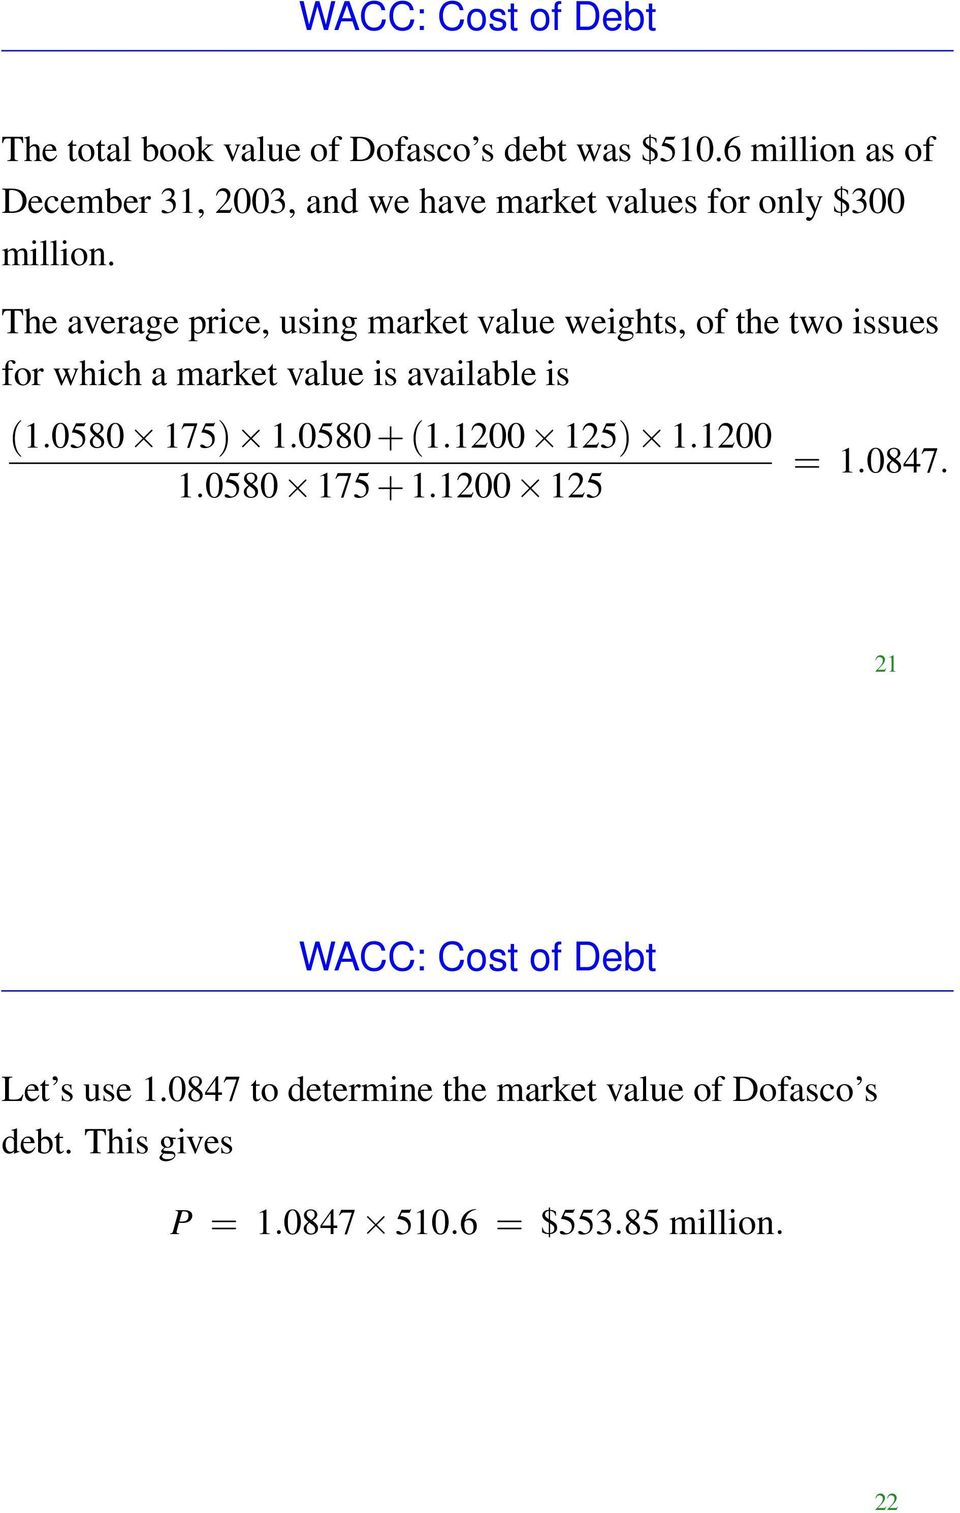 The average price, using market value weights, of the two issues for which a market value is available is (1.